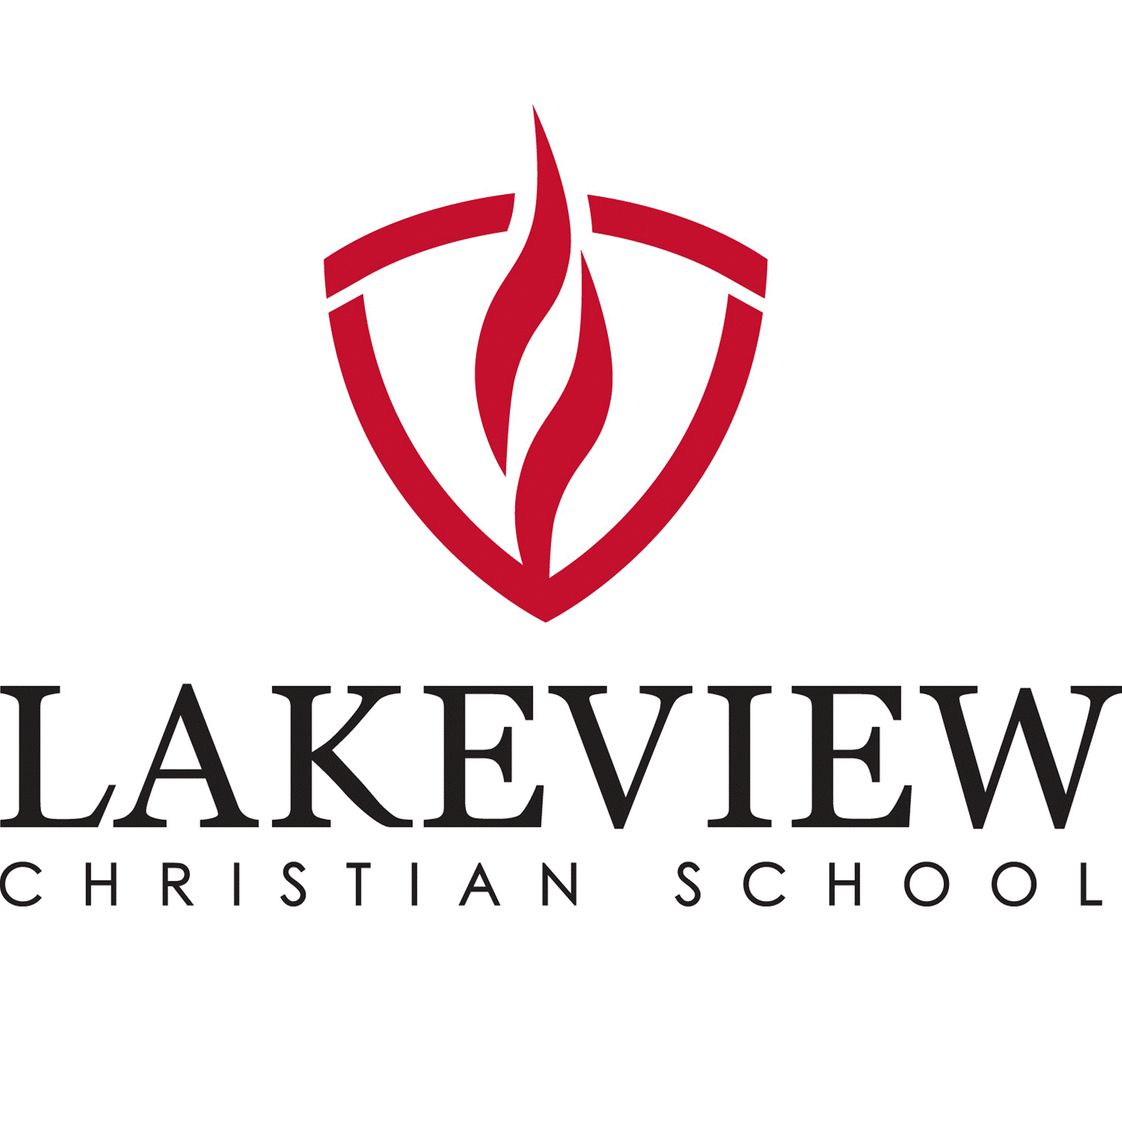 Lakeview Christian School Photo